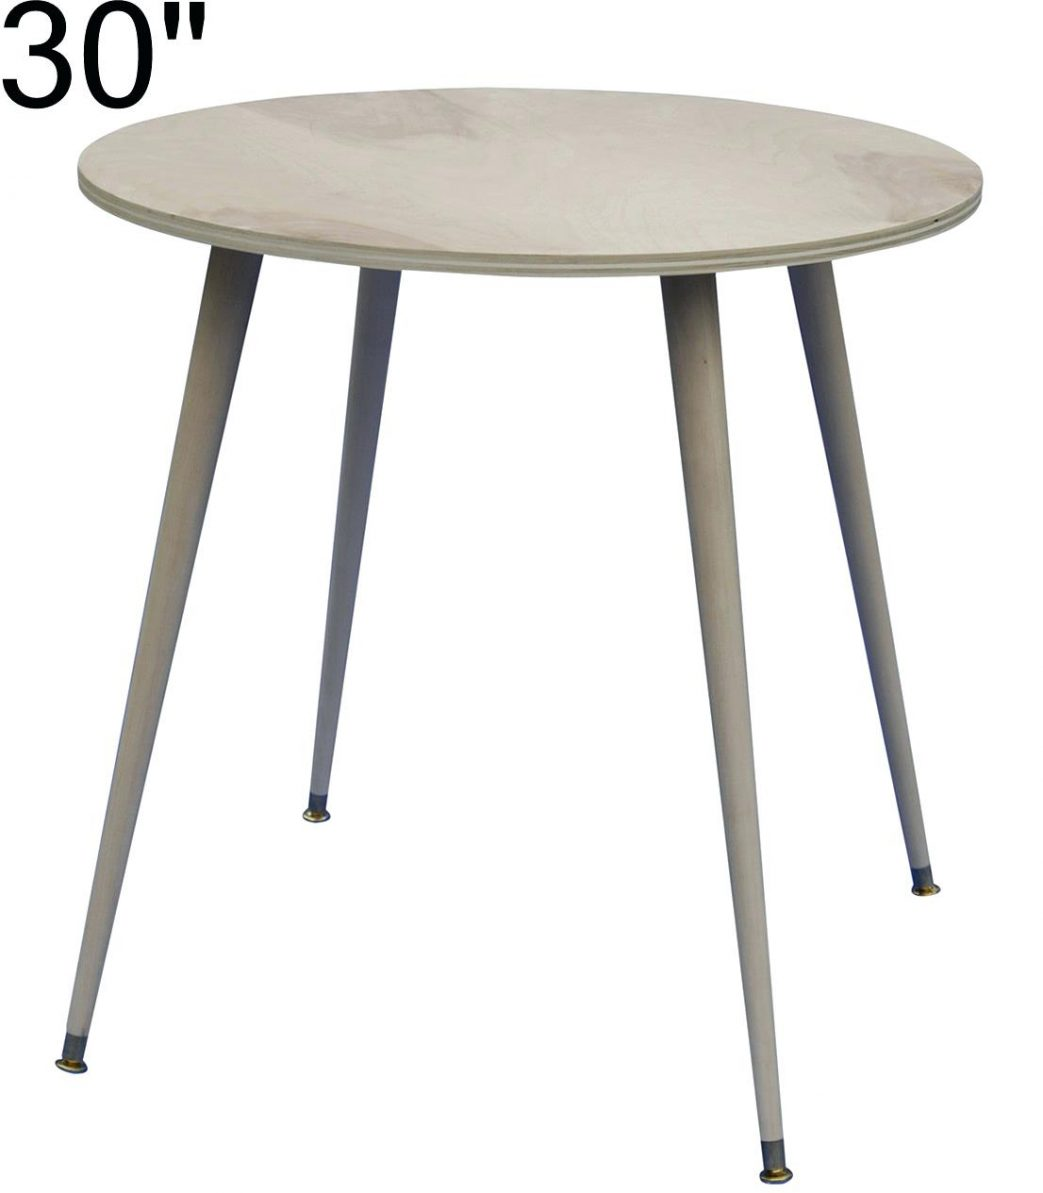 amazing inch high end table for your interior decor accent tables purple butterfly lamp battery powered indoor lights modern nest coffee wooden trellis rustic lamps timber brass